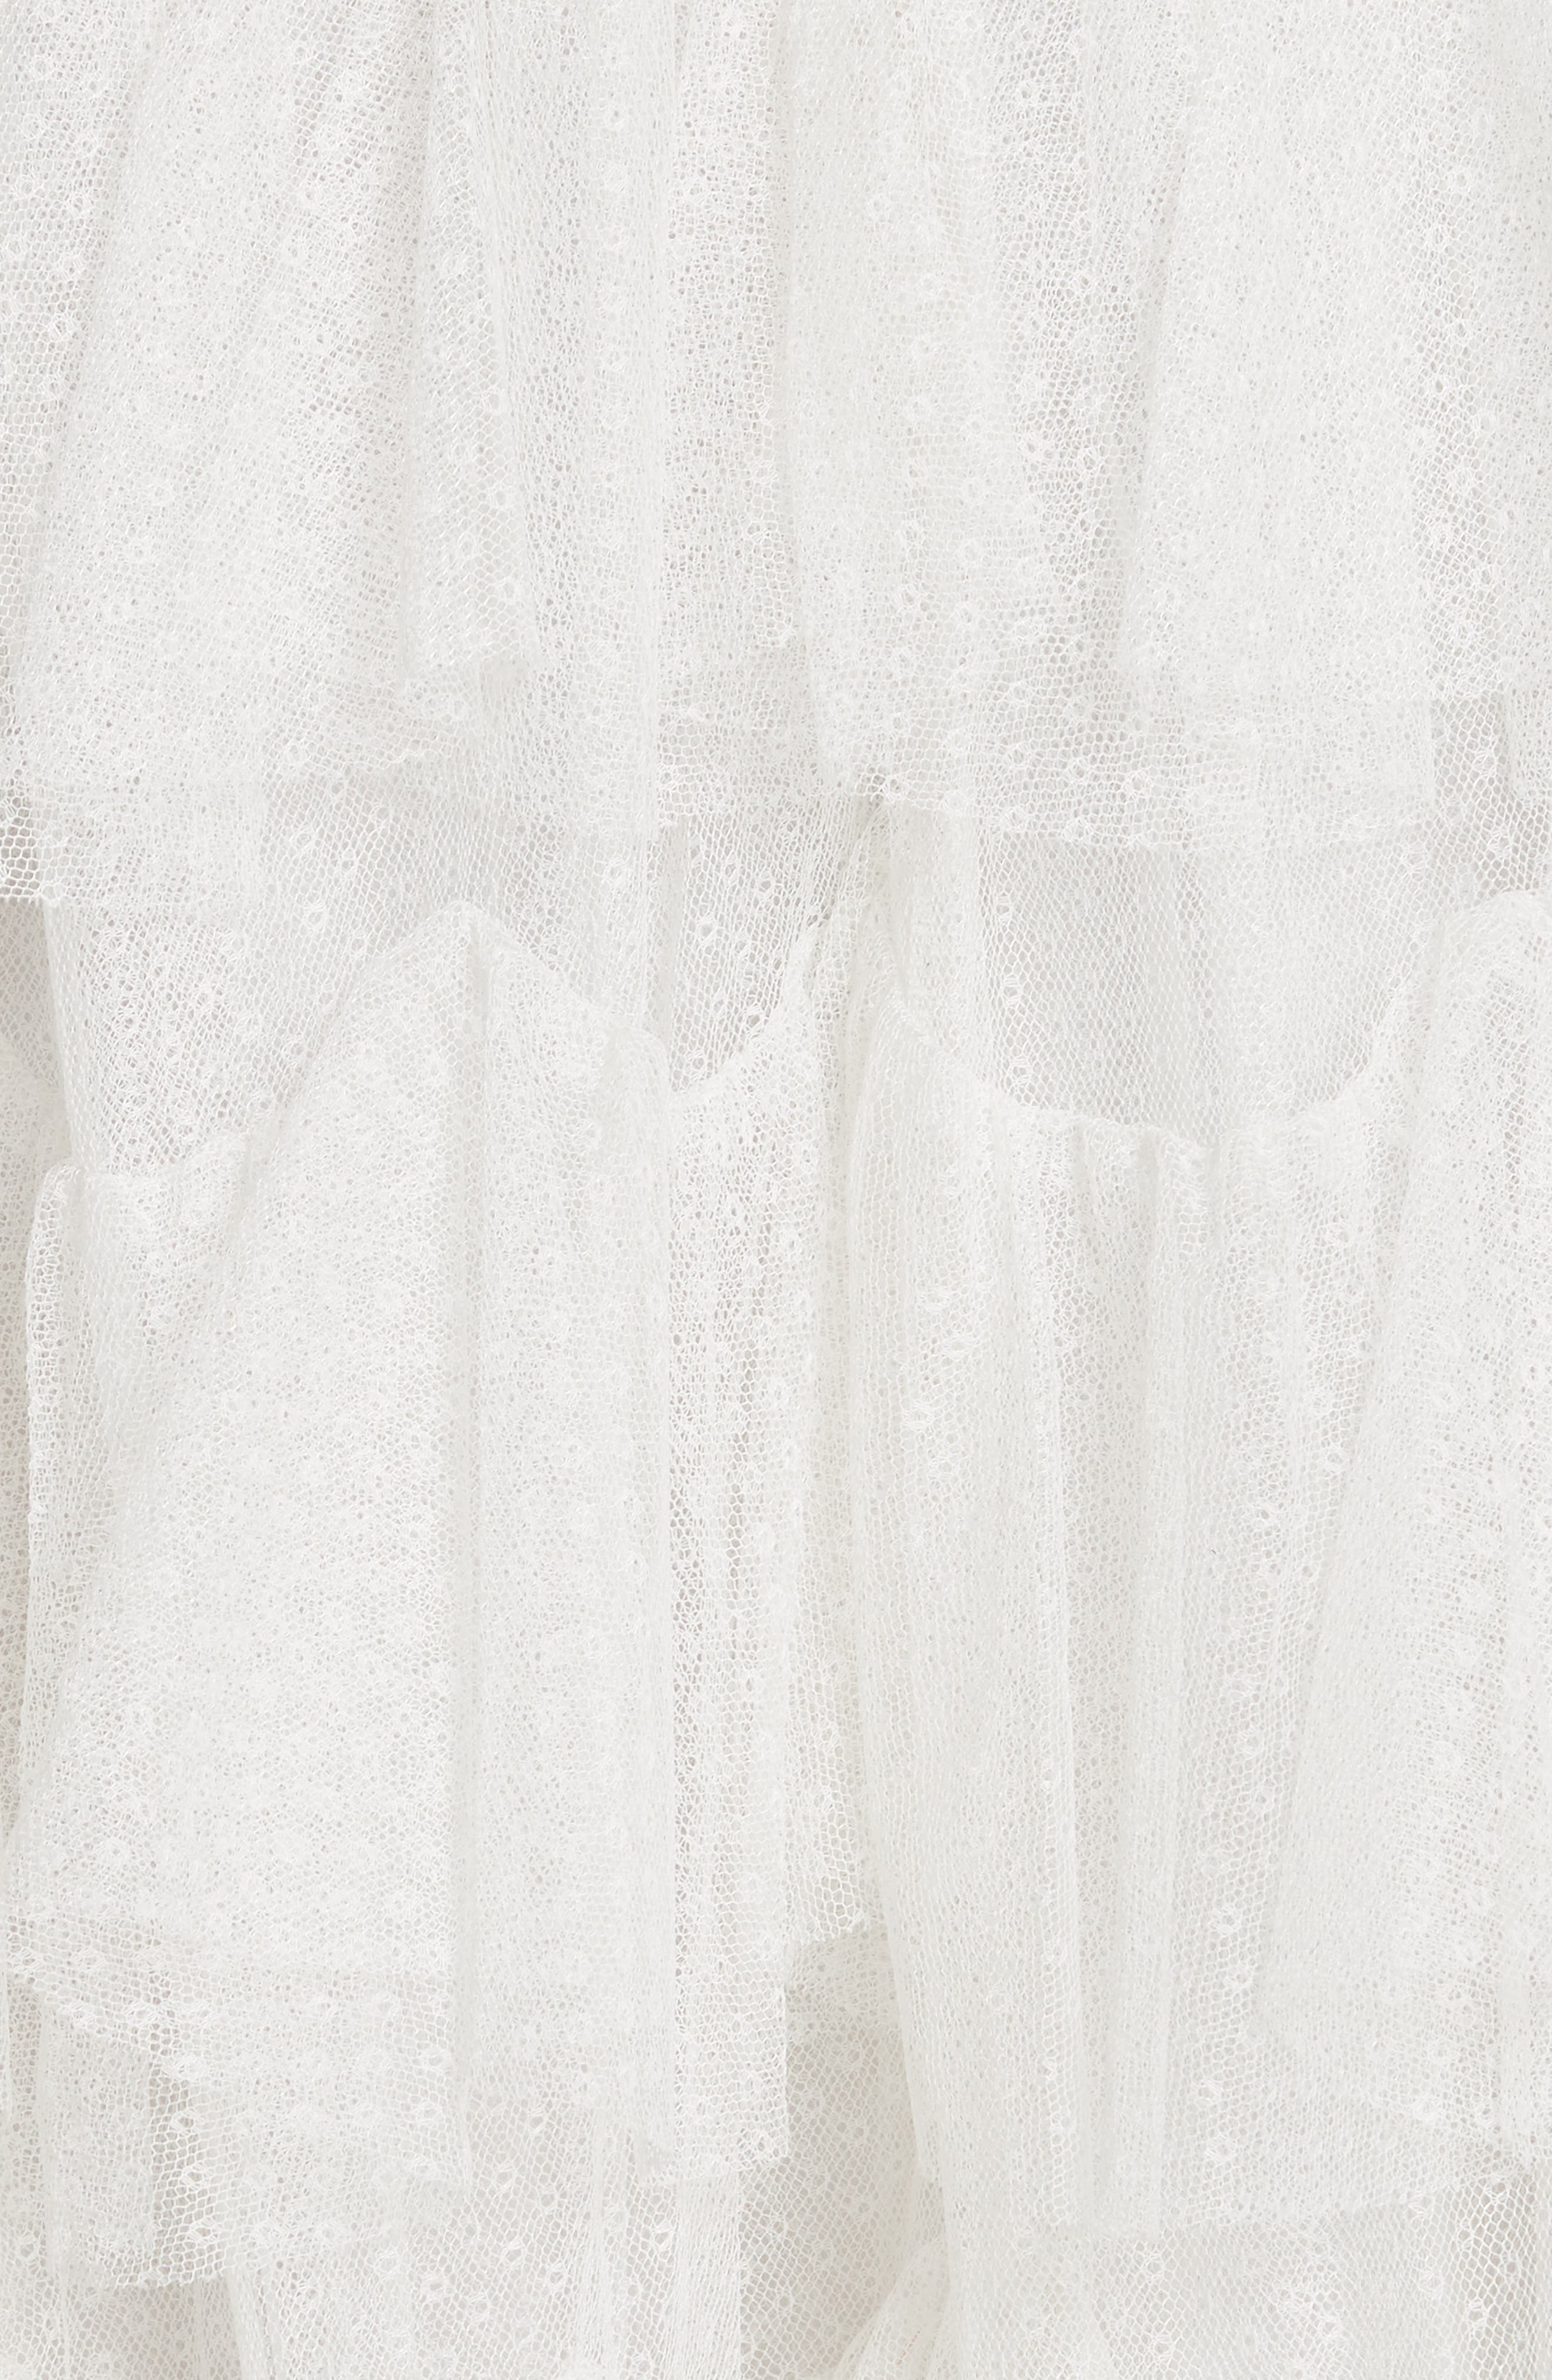 Tiered Tulle Skirt,                             Alternate thumbnail 5, color,                             102